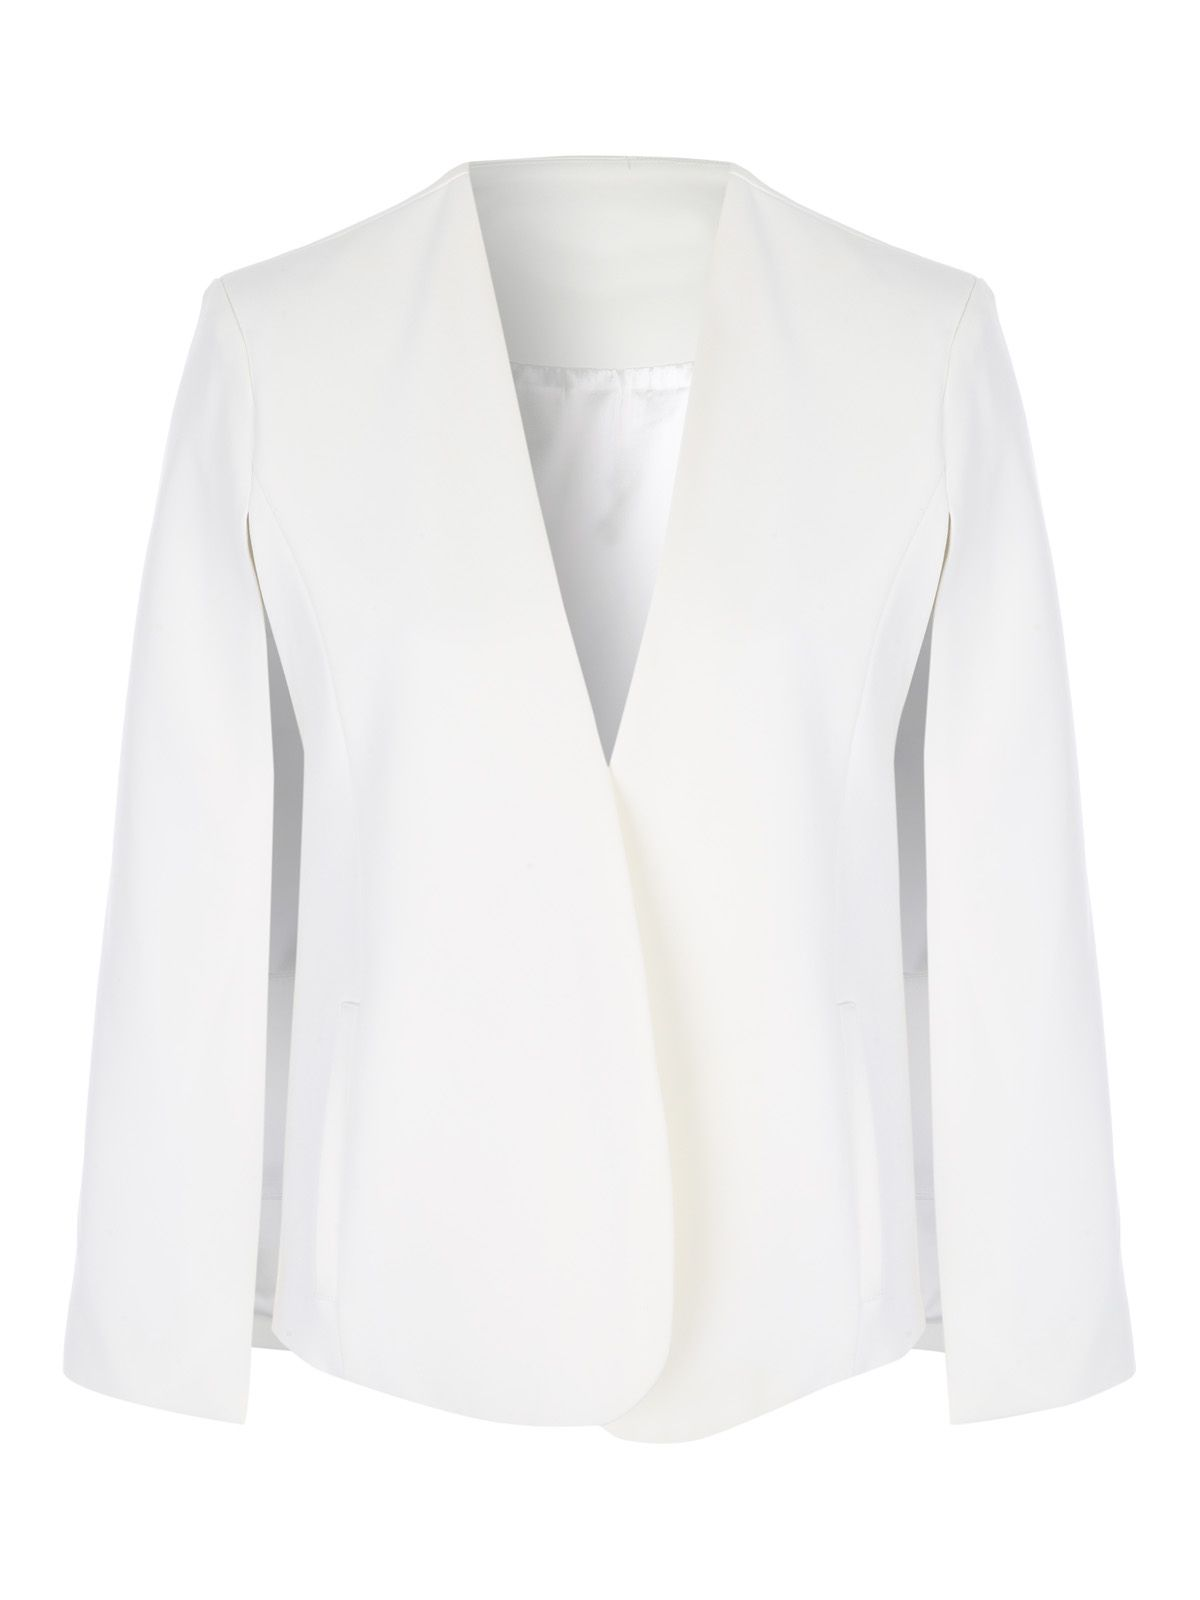 Jane Norman Cape Blazer Jacket, White